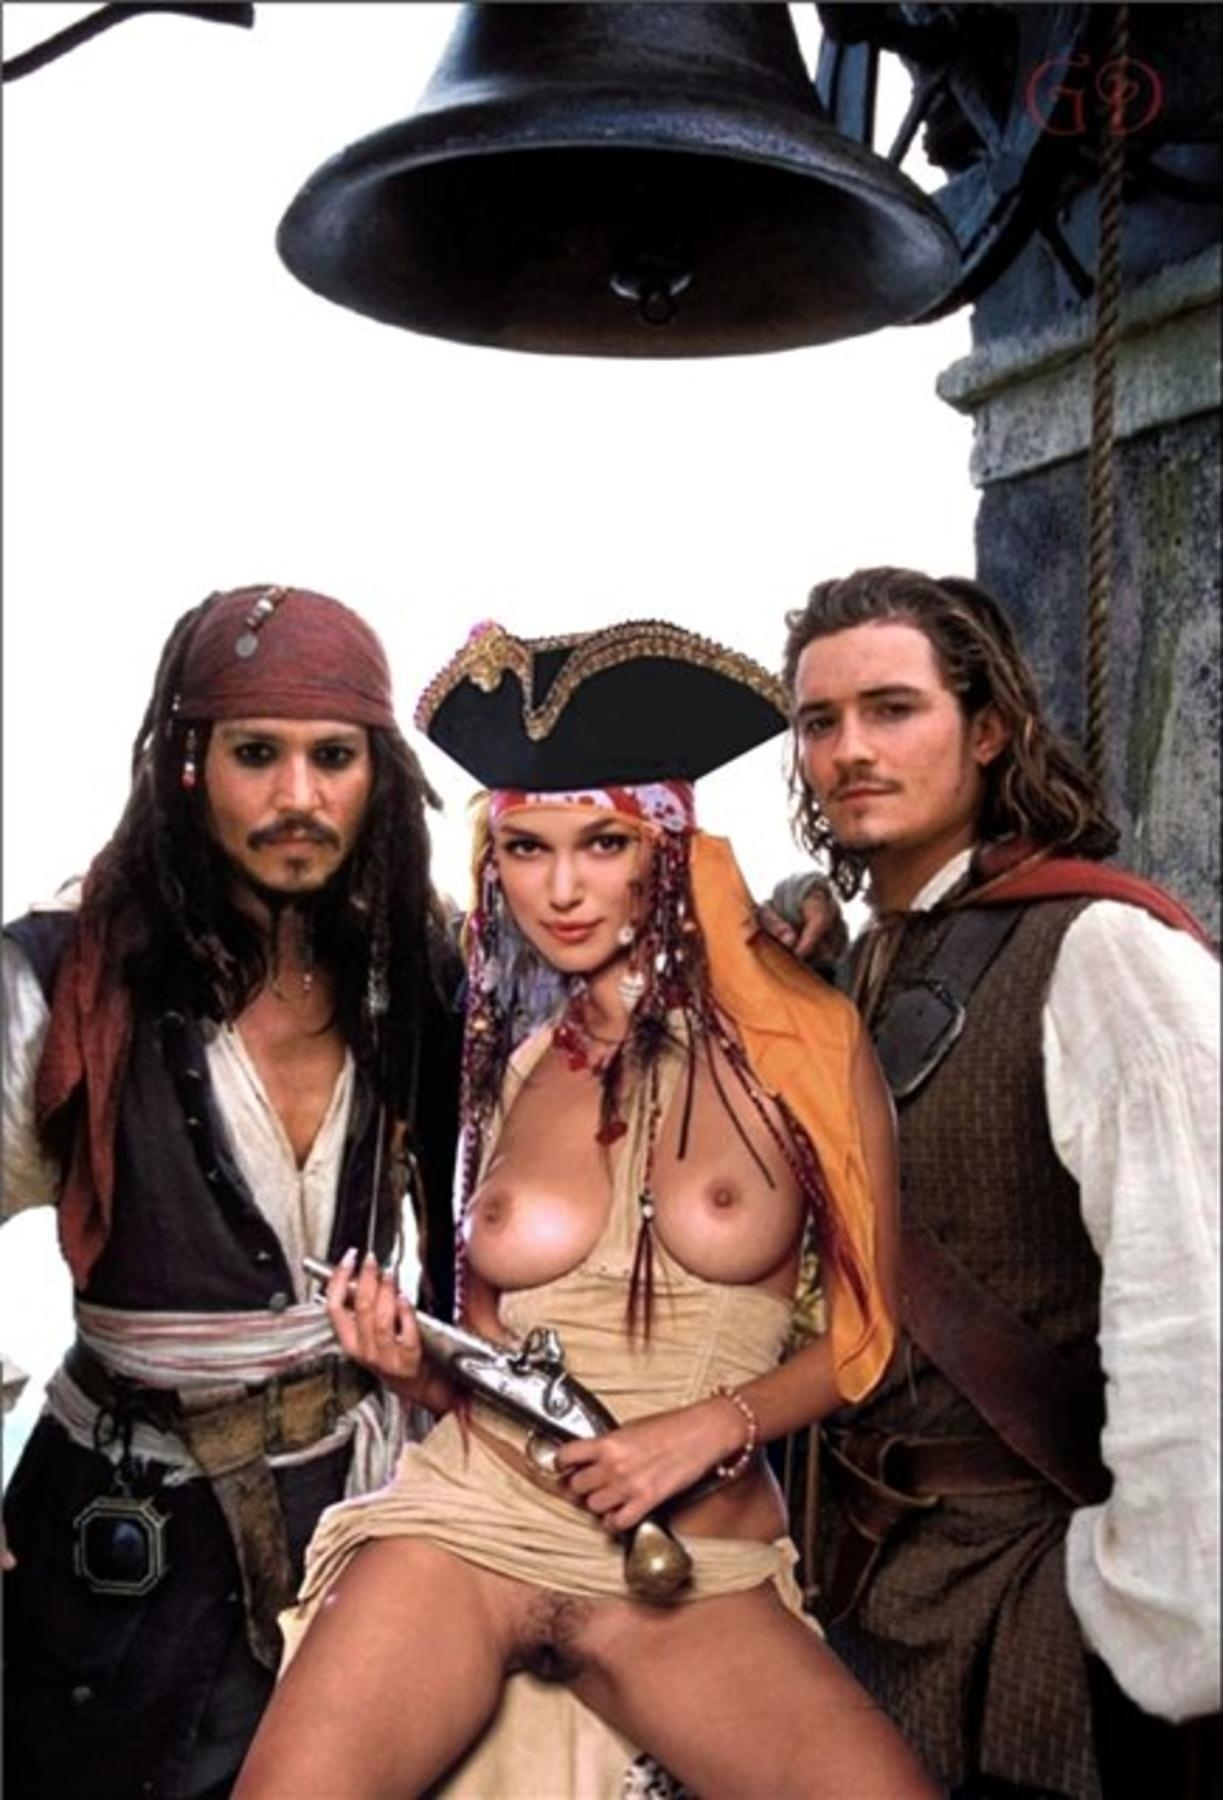 The pirates of the caribbean porn parody nude video